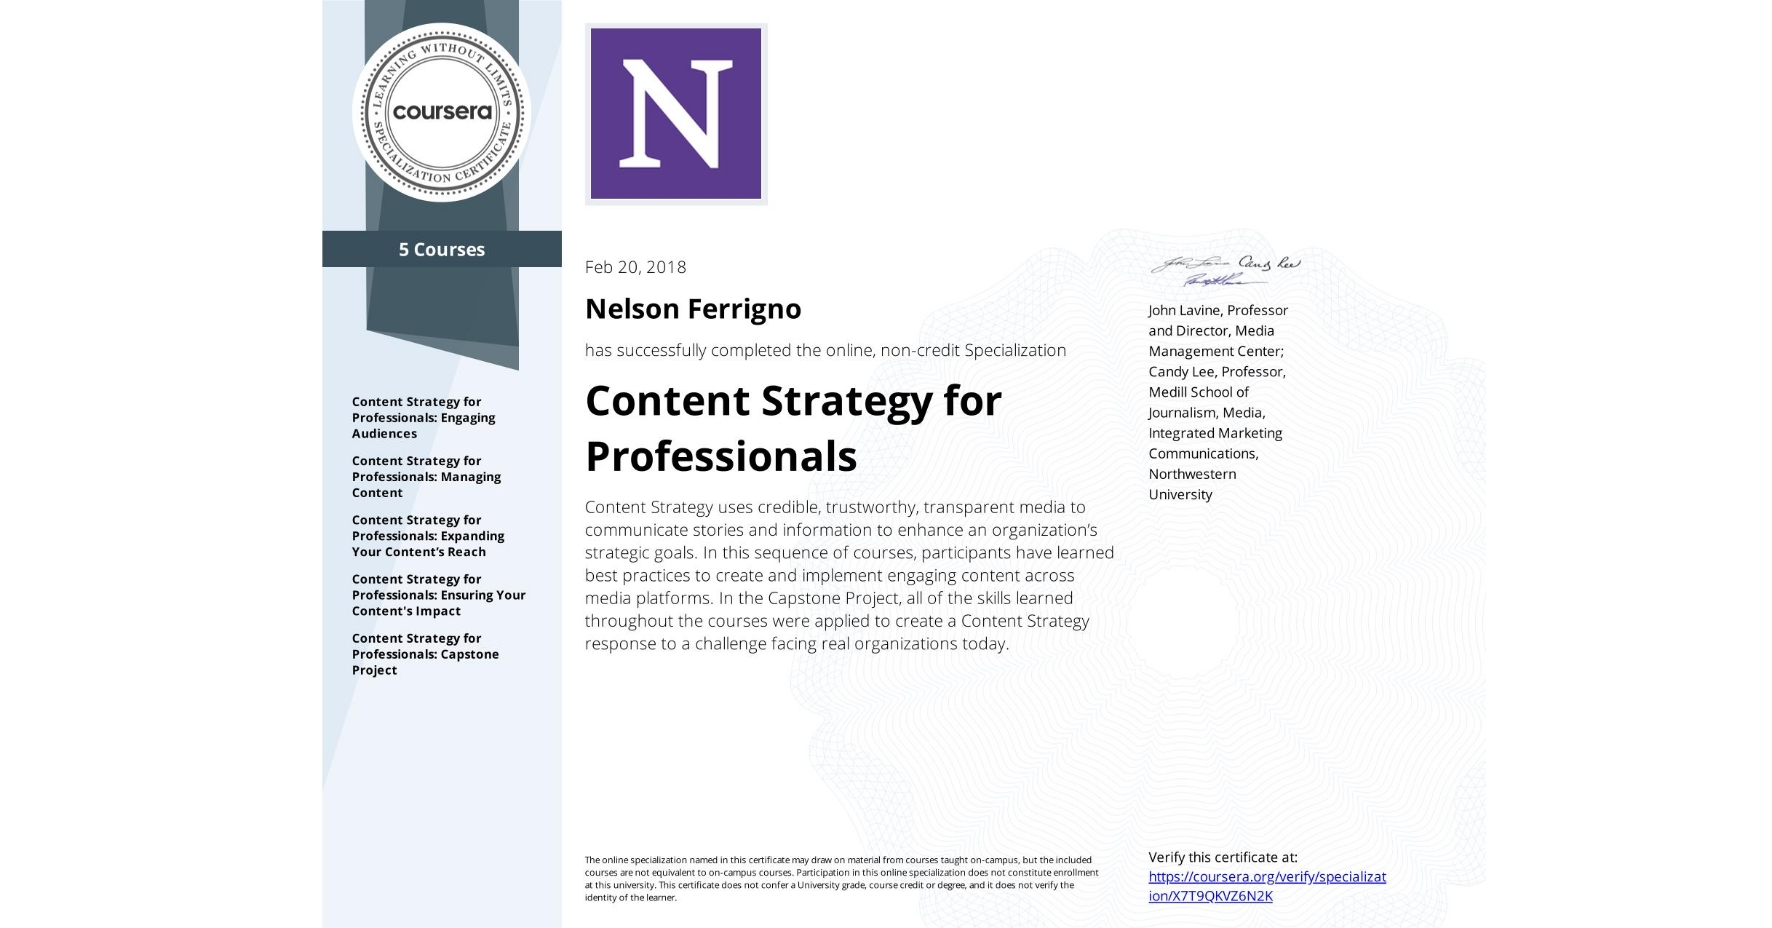 View certificate for Nelson Ferrigno, Content Strategy for Professionals, offered through Coursera. Content Strategy uses credible, trustworthy, transparent media to communicate stories and information to enhance an organization's strategic goals. In this sequence of courses, participants have learned best practices to create and implement engaging content across media platforms. In the Capstone Project, all of the skills learned throughout the courses were applied to create a Content Strategy response to a challenge facing real organizations today.